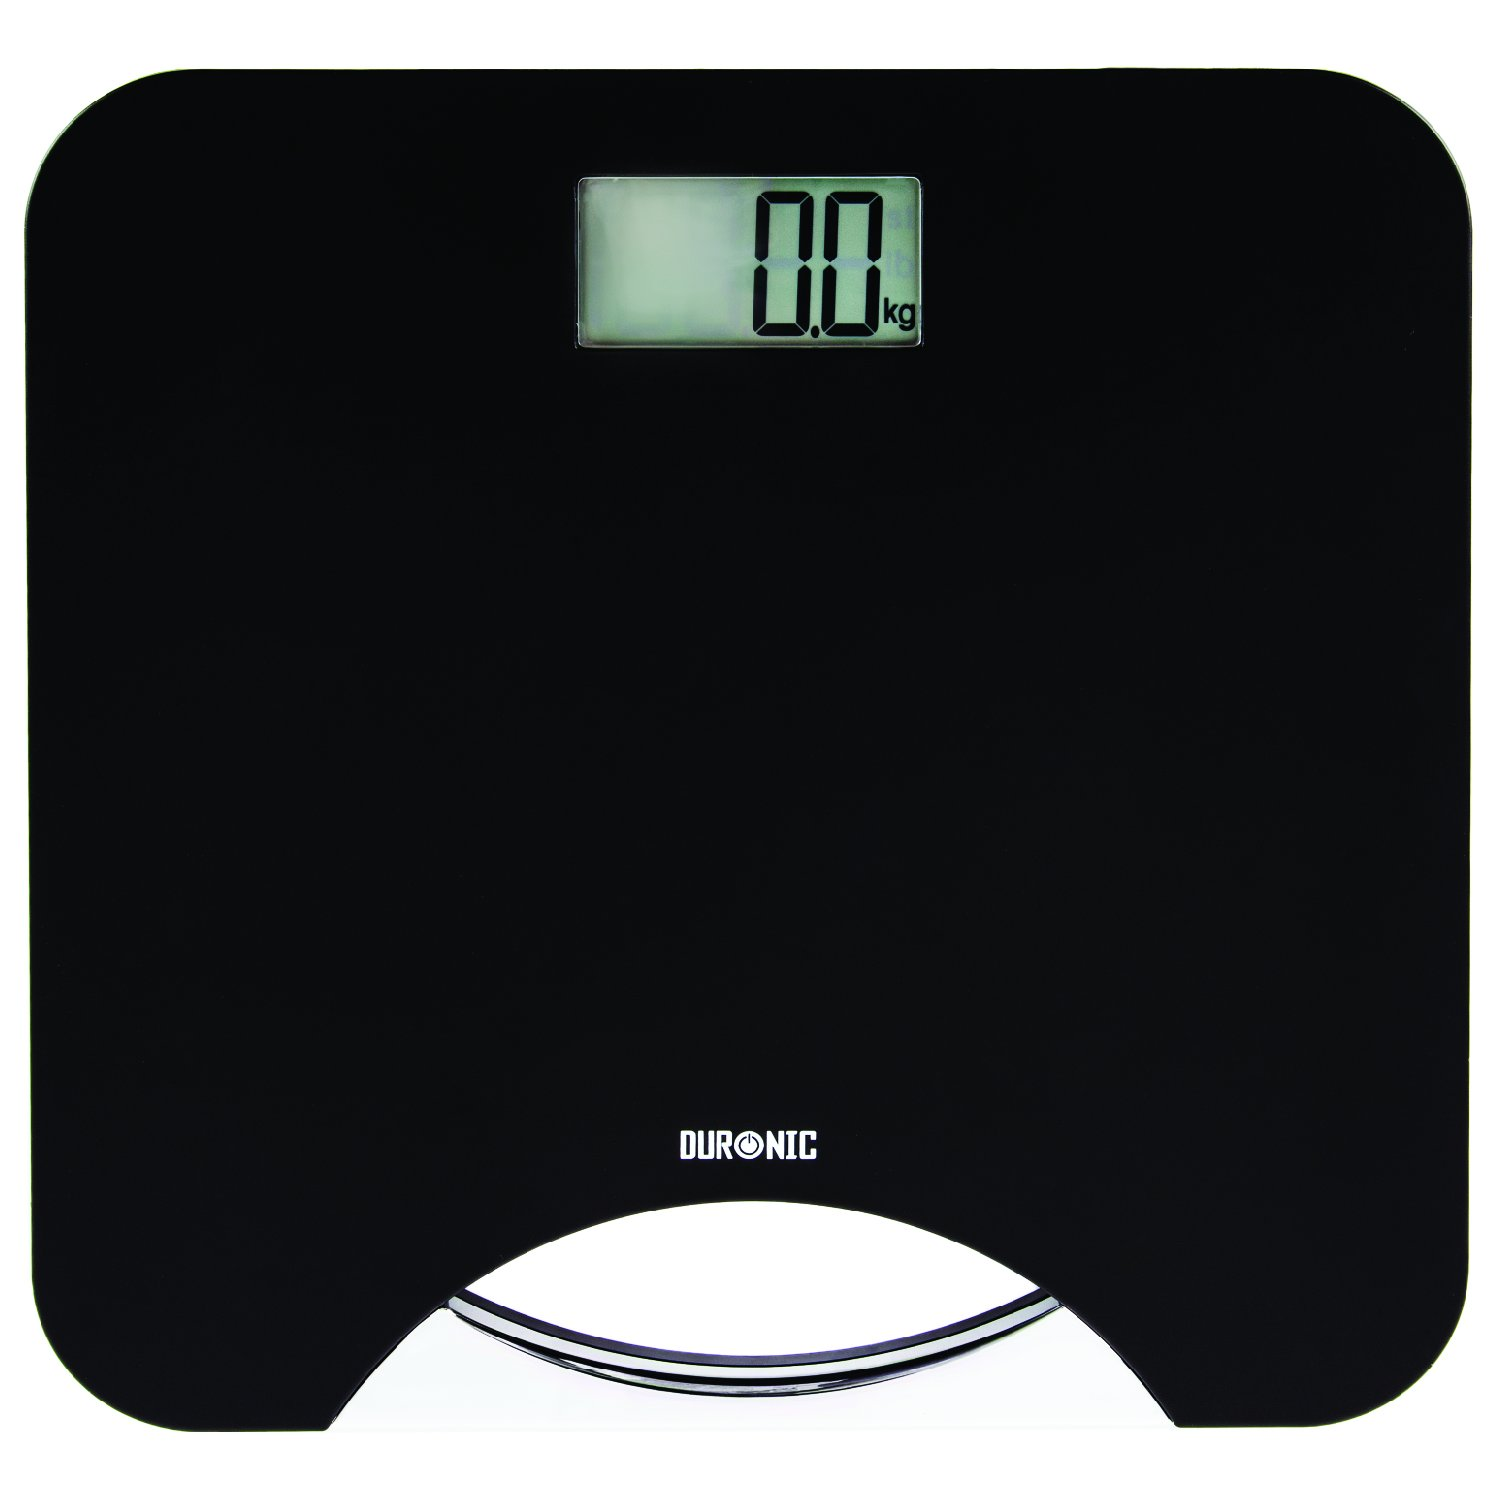 Duronic BS801 Touch Sense Electronic Slim Digital Bathroom Scales